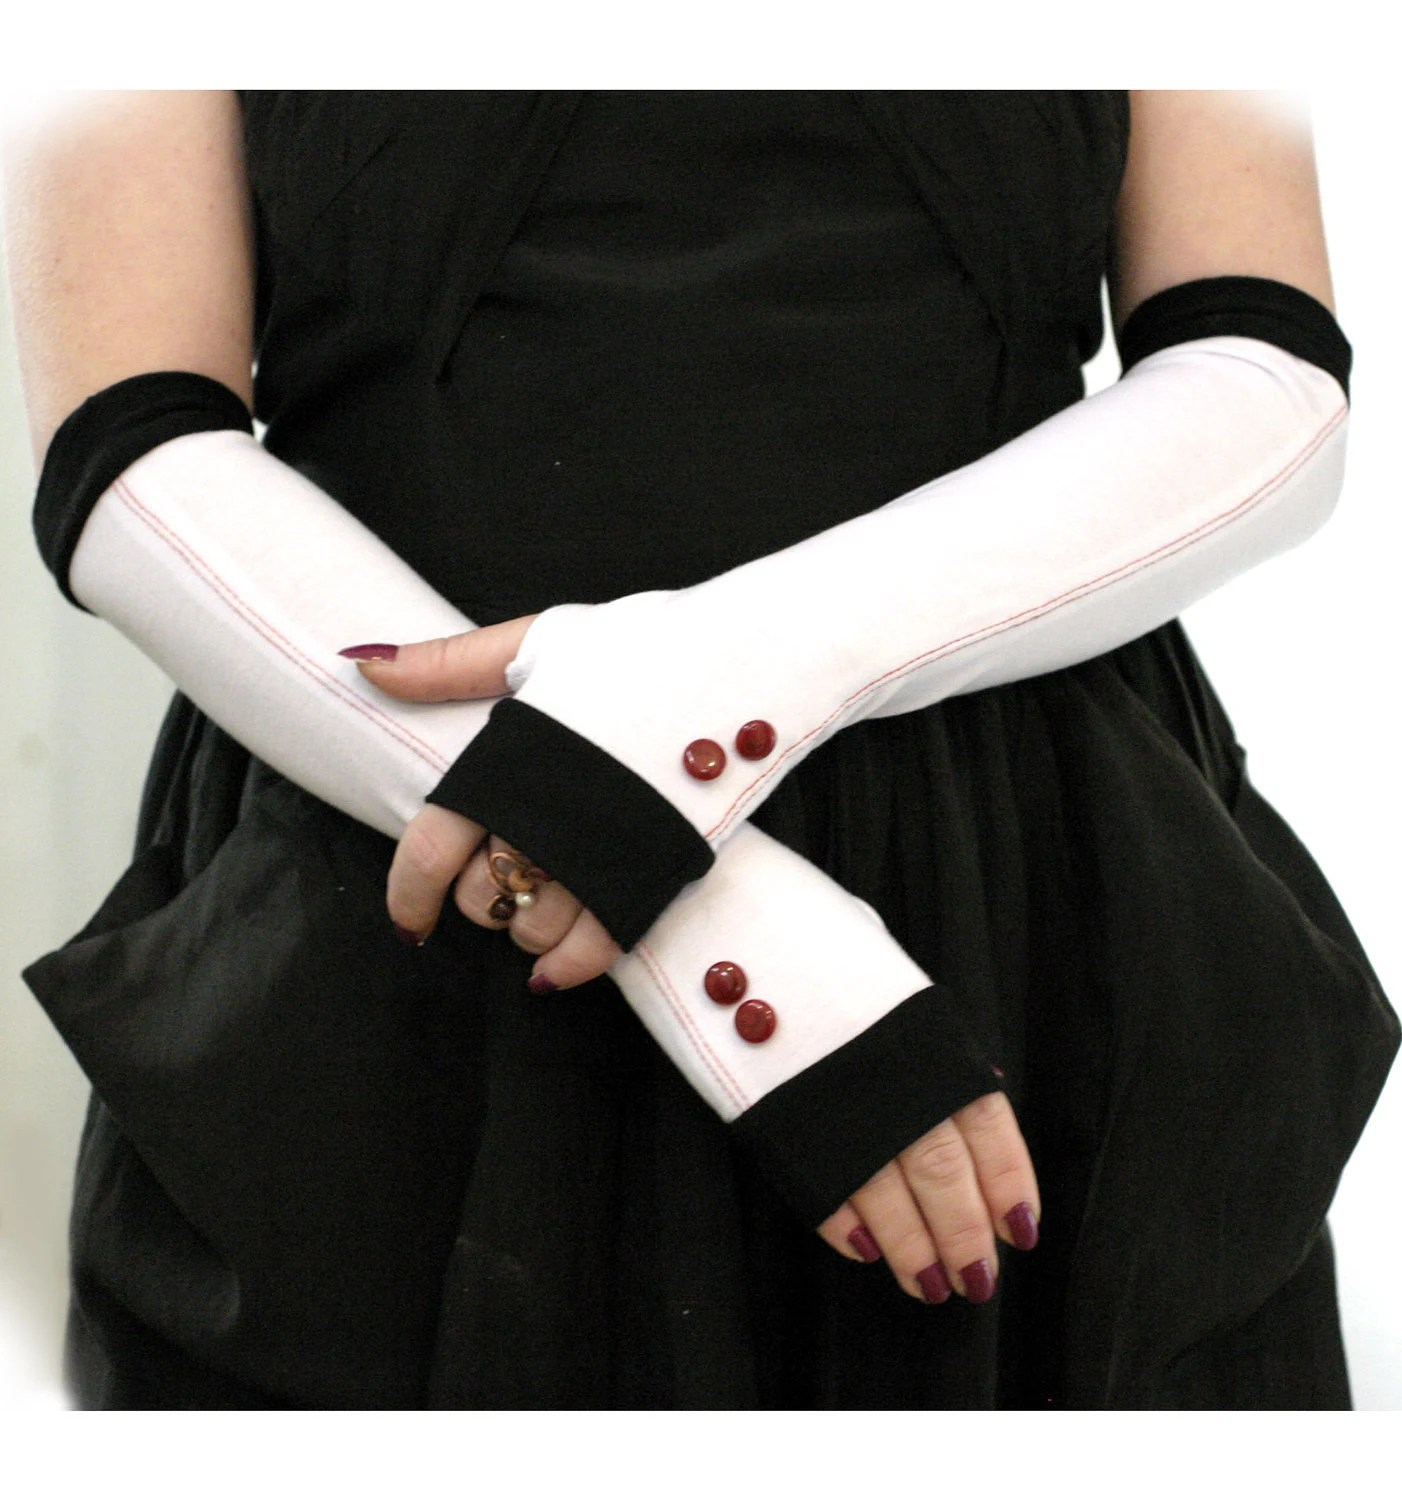 Elegant white wiht black edges and shiny cherry vintage buttons  fingerless gloves  - Wedding Gothic Steampunk  Alice  Chic Classic Red - WearMeUp